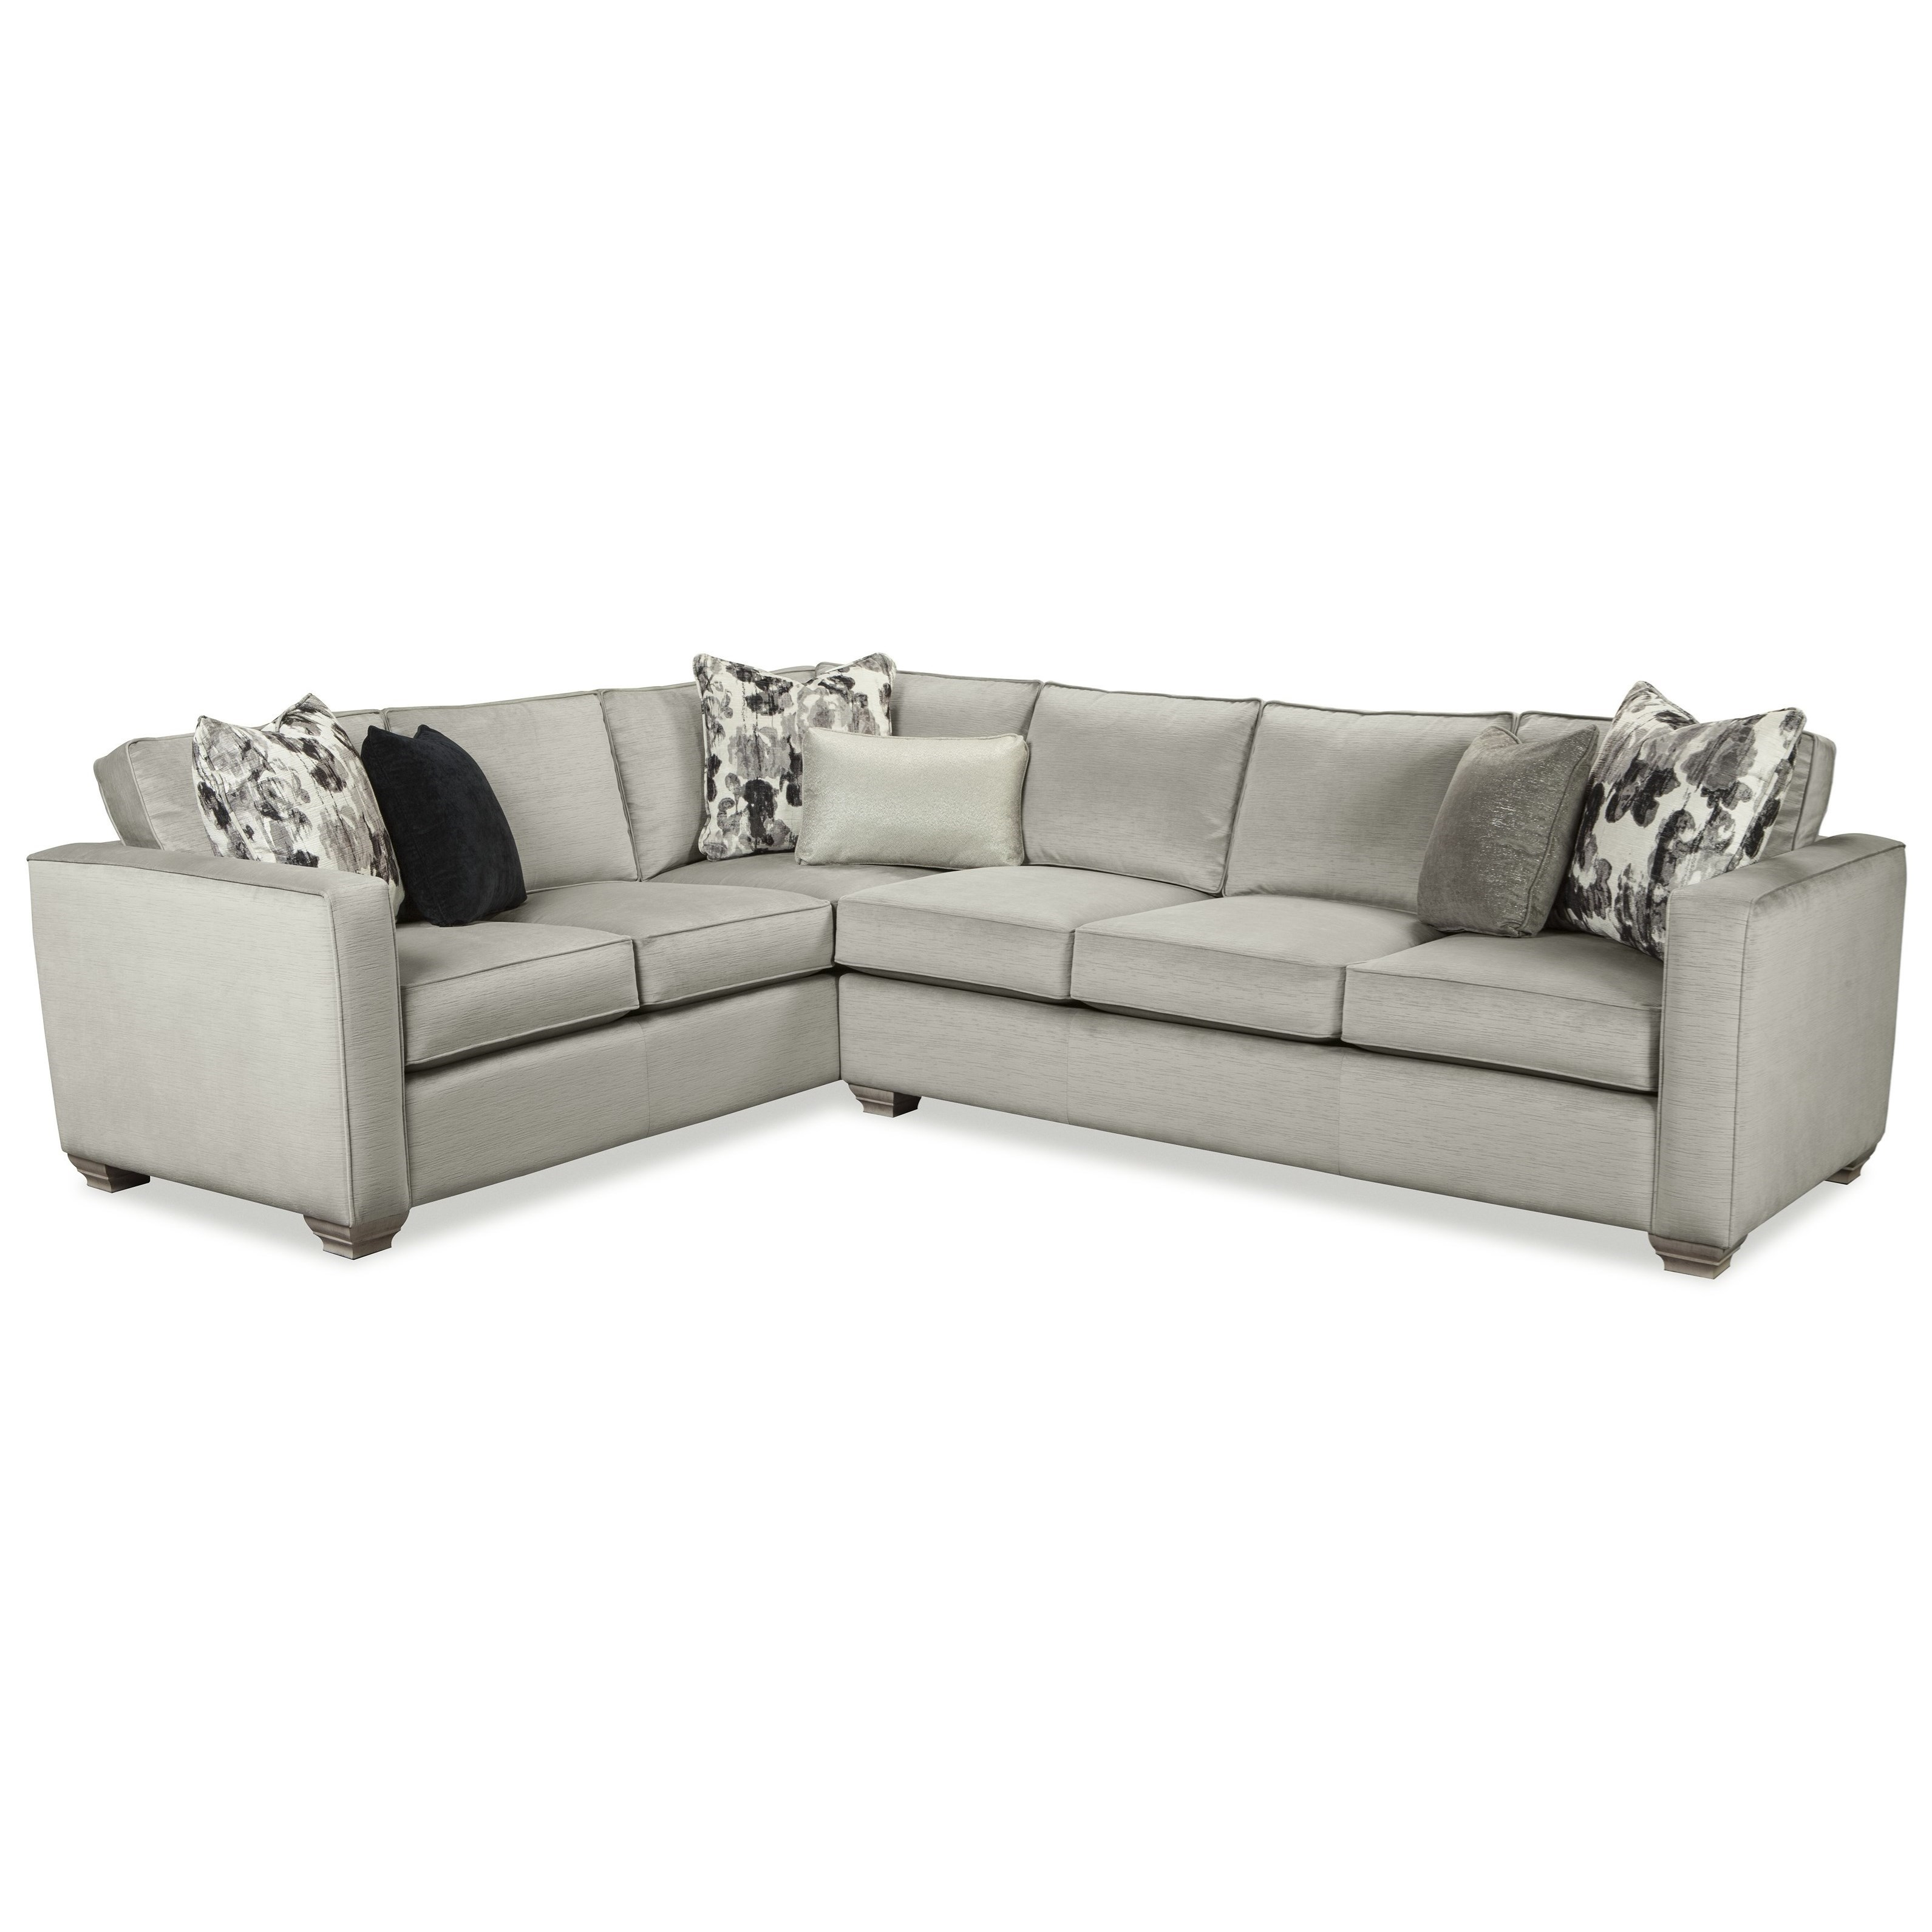 Br Thult Corner Sofa Bed Review: Rachael Ray Home By Craftmaster R7727 Two Piece Sectional